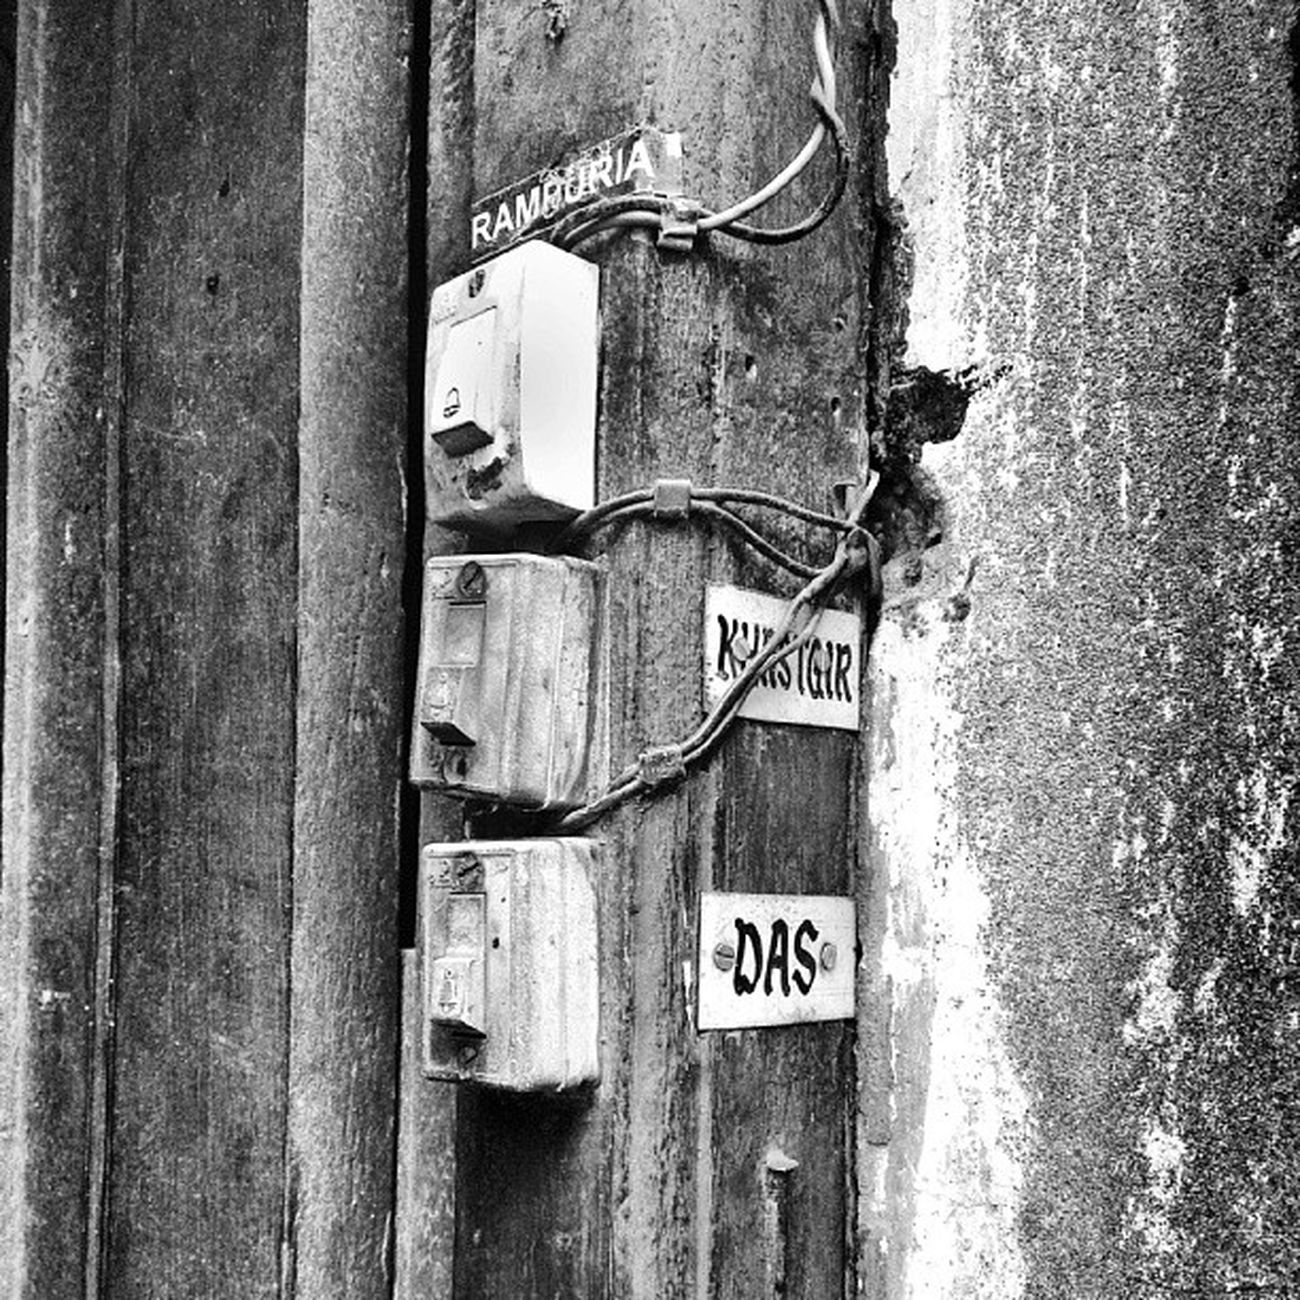 Doorbell Switches on an Old North Calcutta door. incrediblecalcutta calcuttaphototours